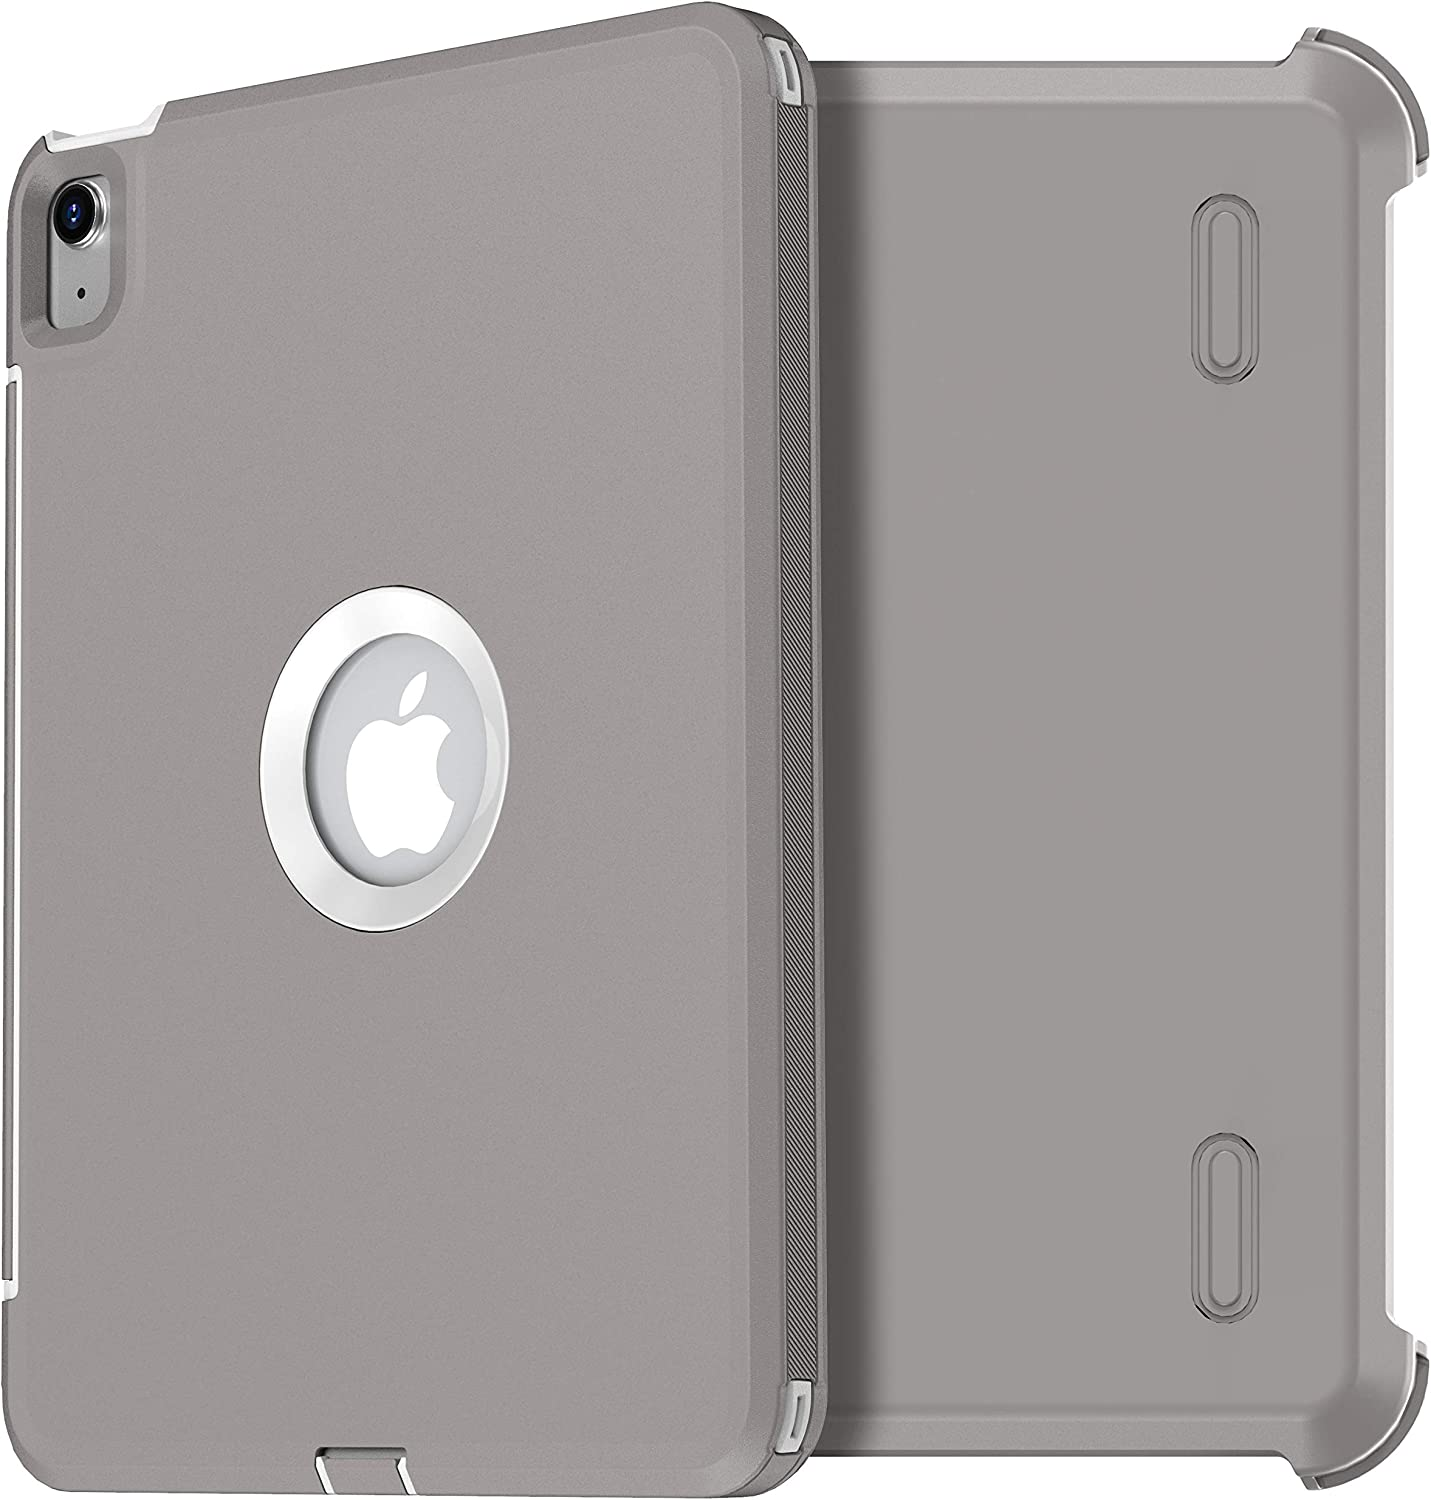 AICase for iPad Air 4 Case 2020,New iPad Air 10.9 Cases Heavy Duty Rugged Shockproof Triple Layer Defense for iPad Air 4th Generation 2020 (Gray+White)